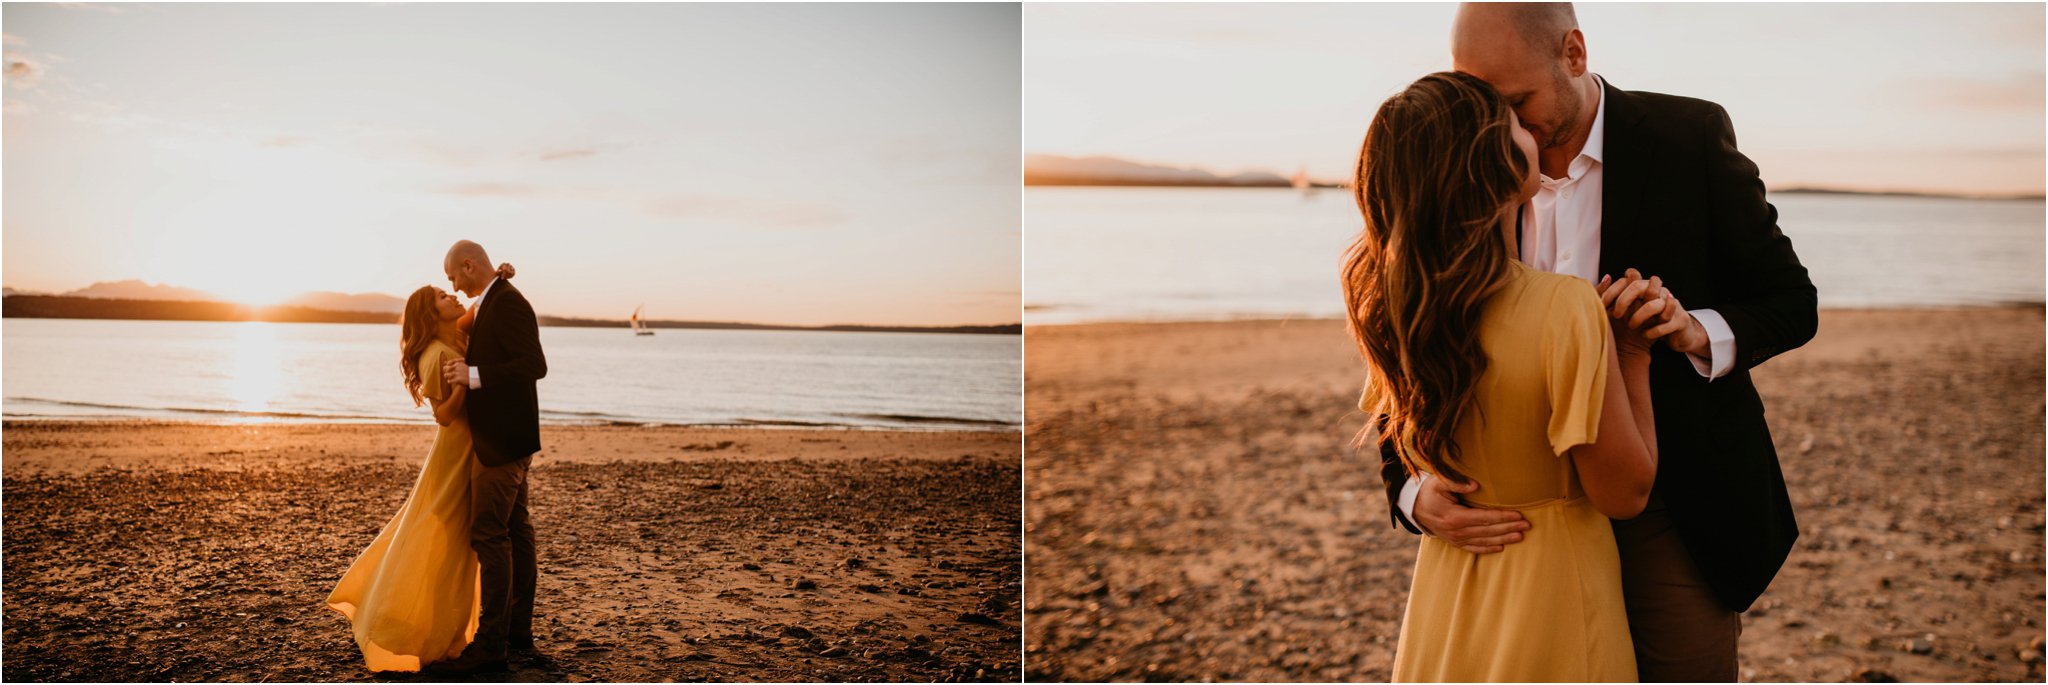 thuy-and-andrew-discovery-park-seattle-beach-engagement-session-033.jpg